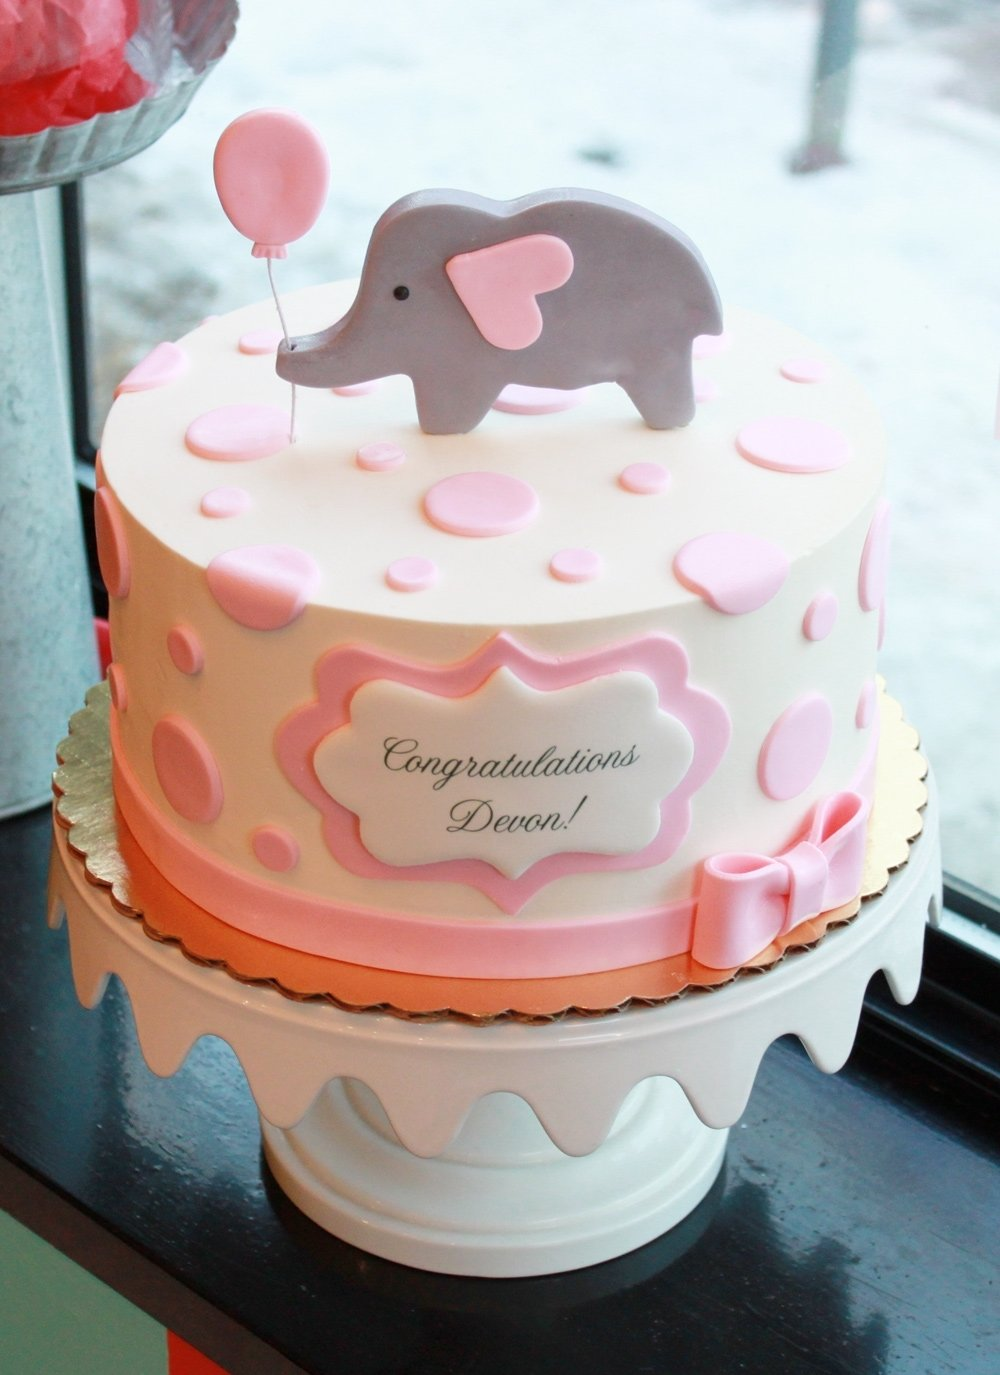 10 Elegant Cake Ideas For Baby Shower gorgeous baby shower cakes stay at home mum 8 2020